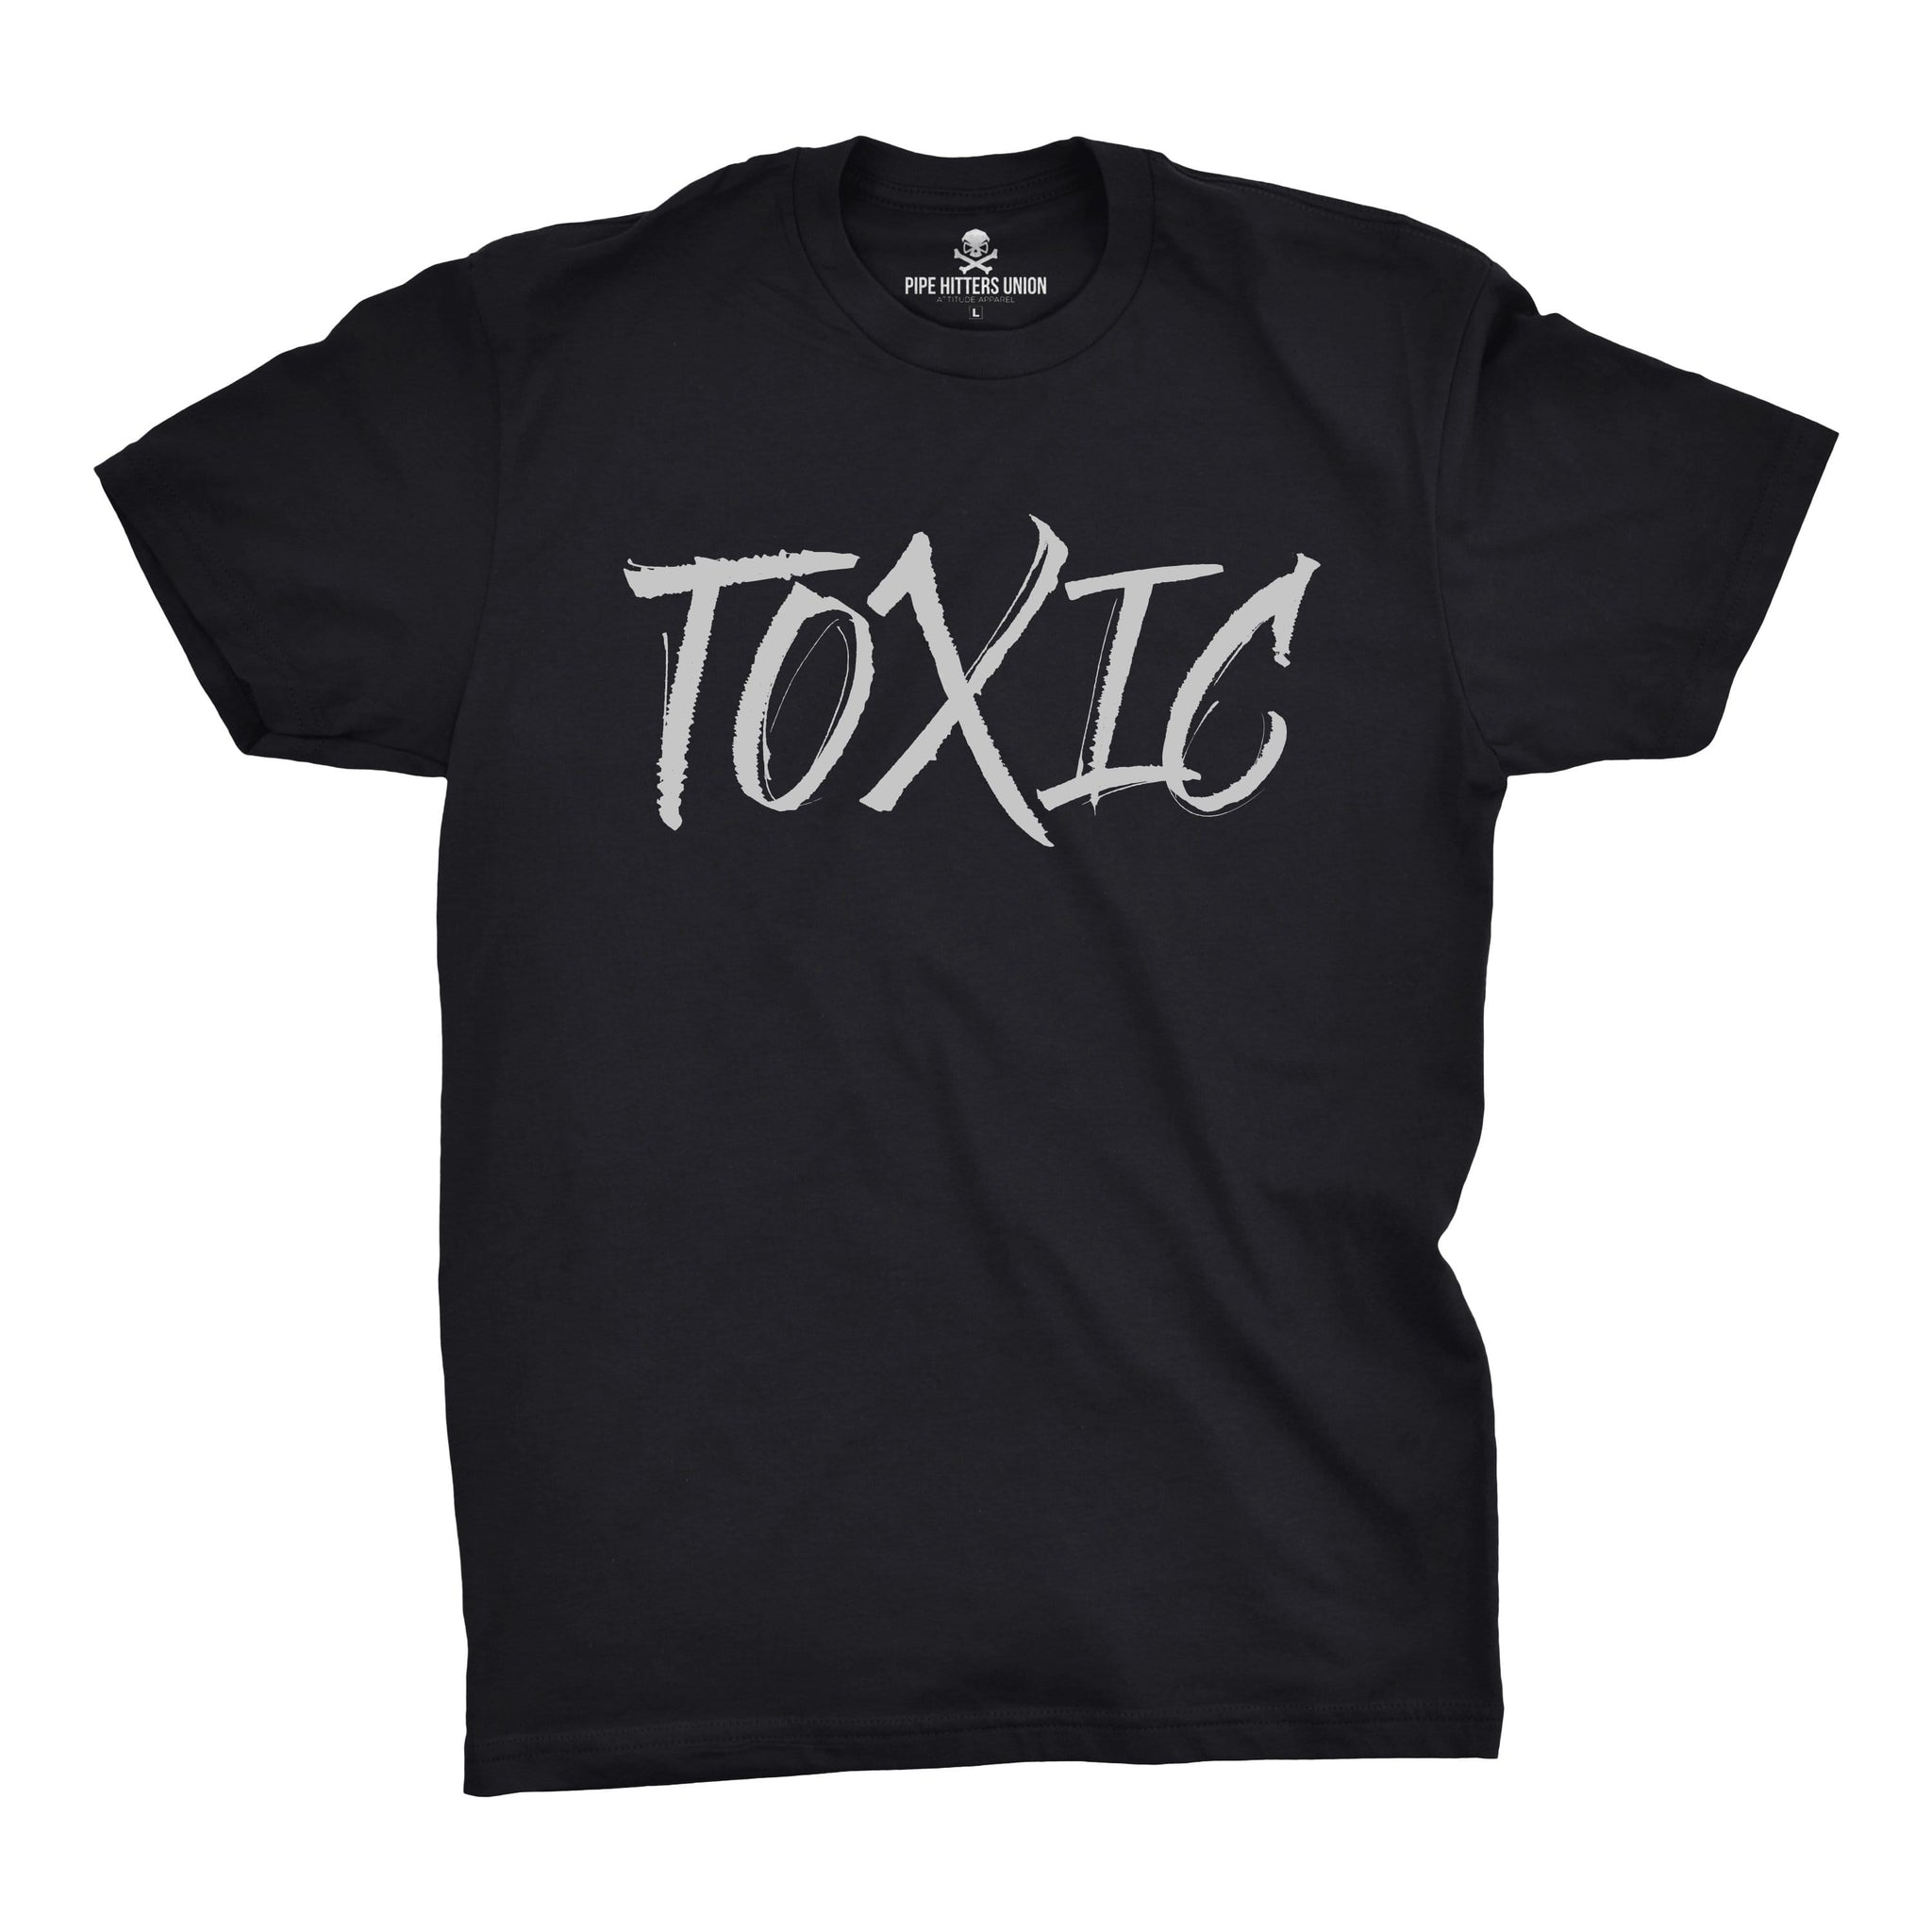 Toxic - Black - T-Shirts - Pipe Hitters Union